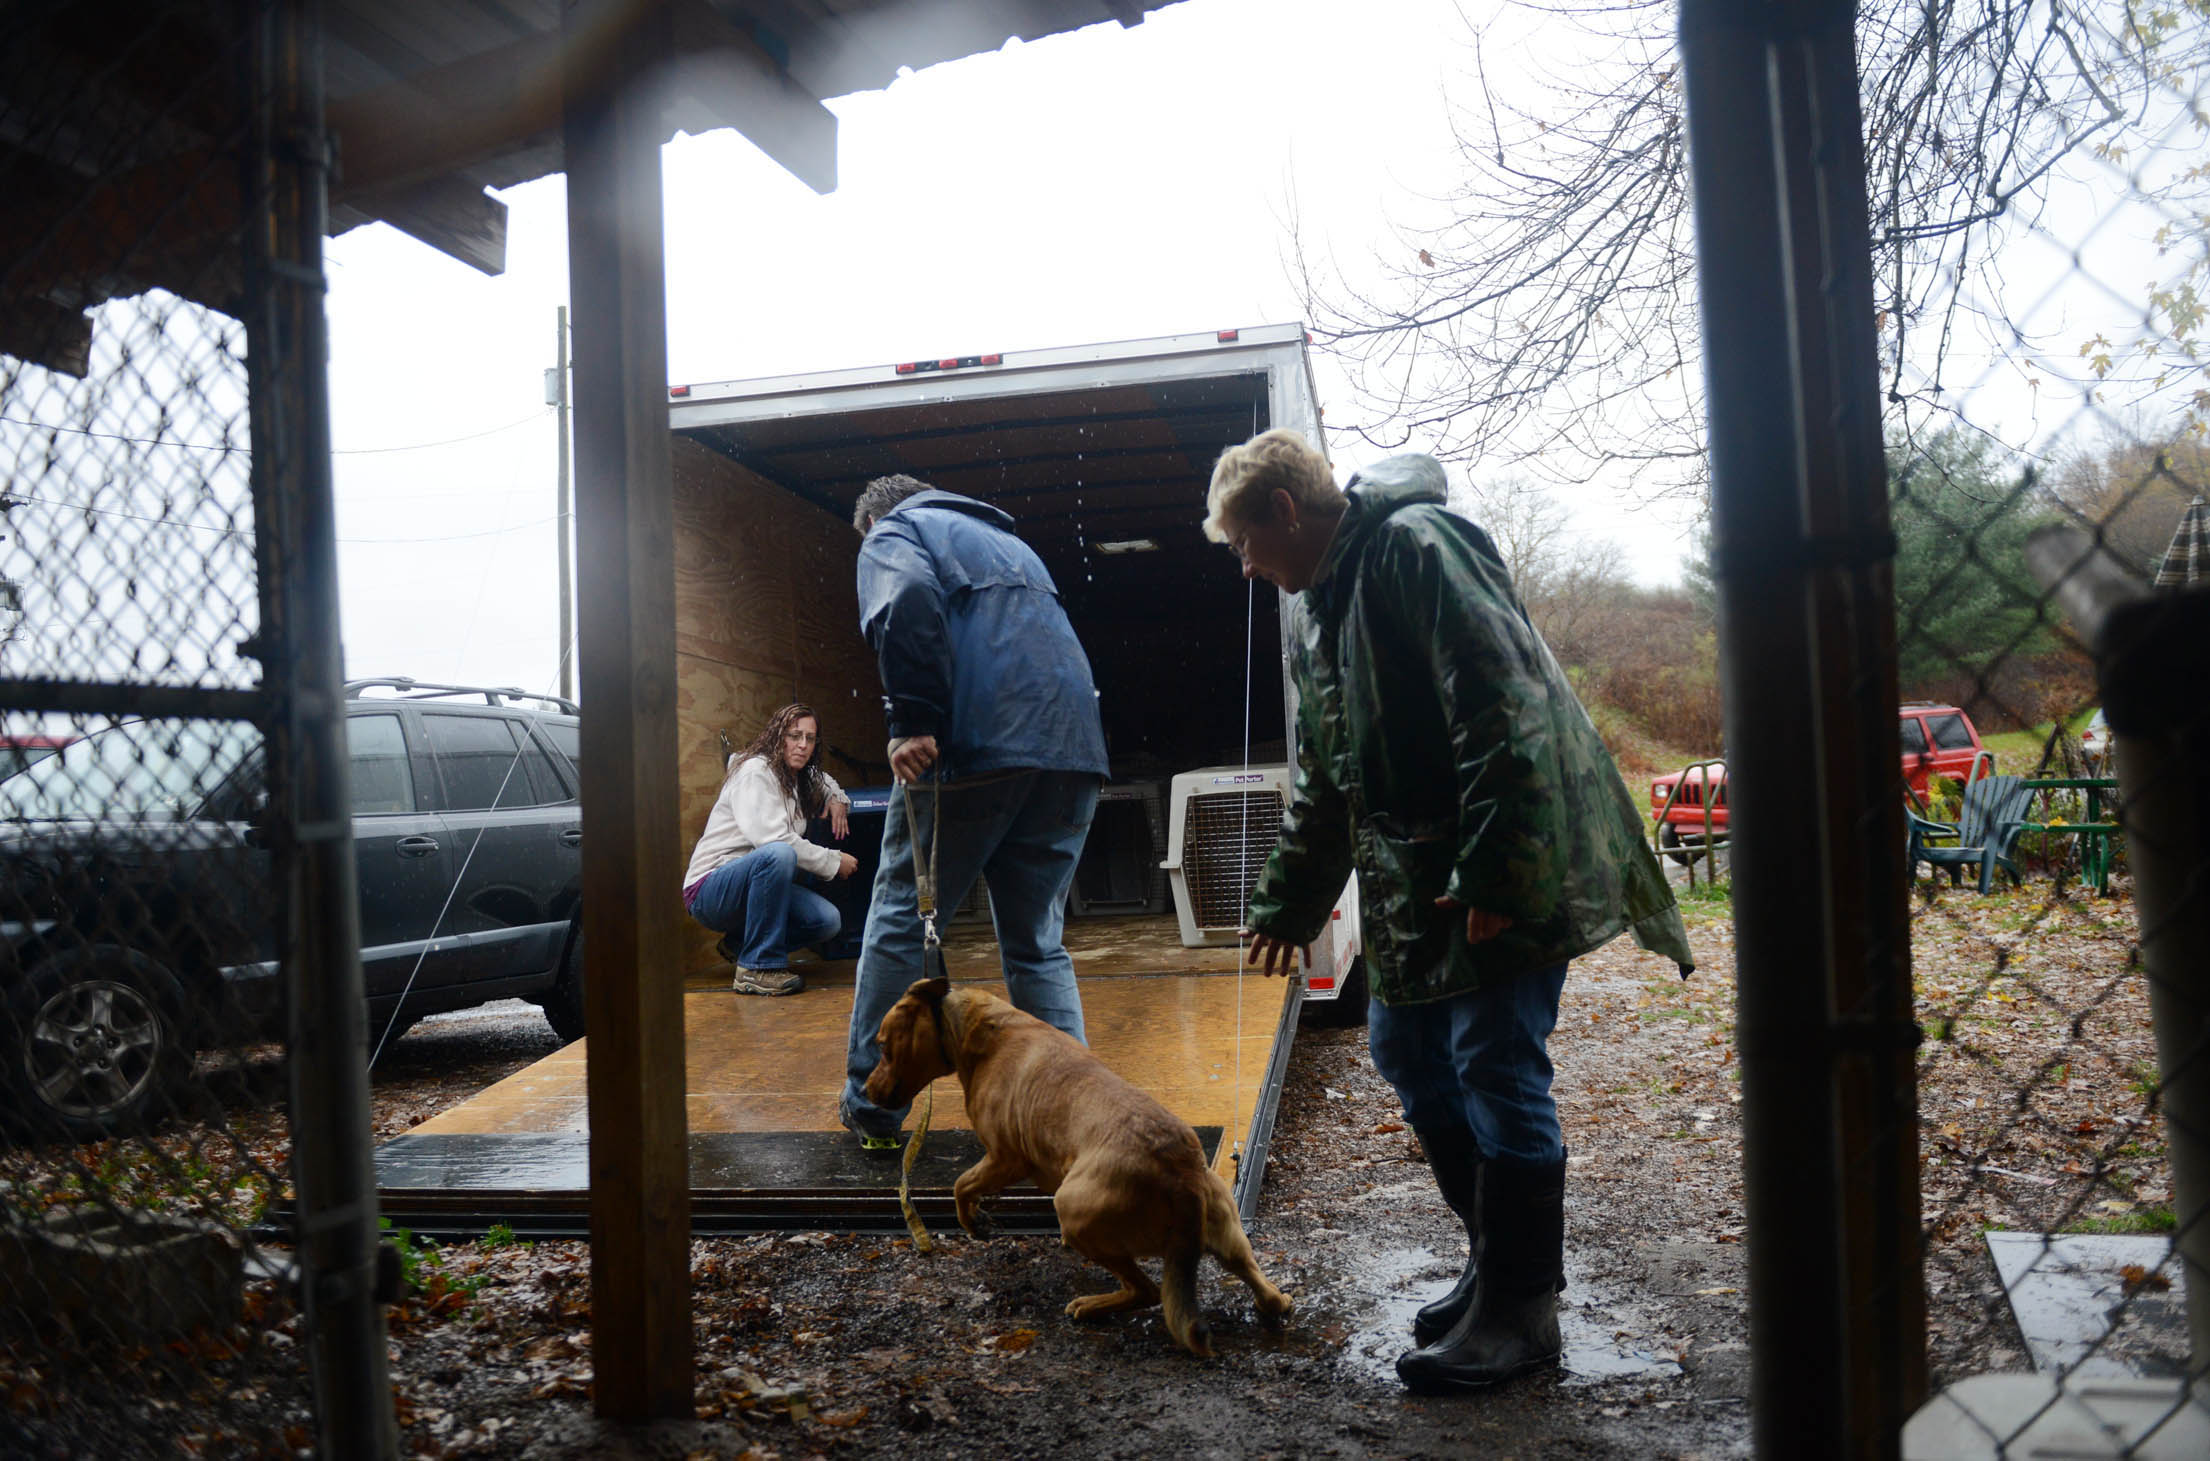 OrphansOfTheStorm2-1 Michael Henninger/Post-Gazette----local------- 10/29/12 Volunteers and the staff of Orphans of the Storm, an animal shelter in Kittanning that sits close to the Allegeny River, work to evacuate animals in anticipation of possible flooding from Hurricane Sandy on Monday, Oct. 29, 2012.